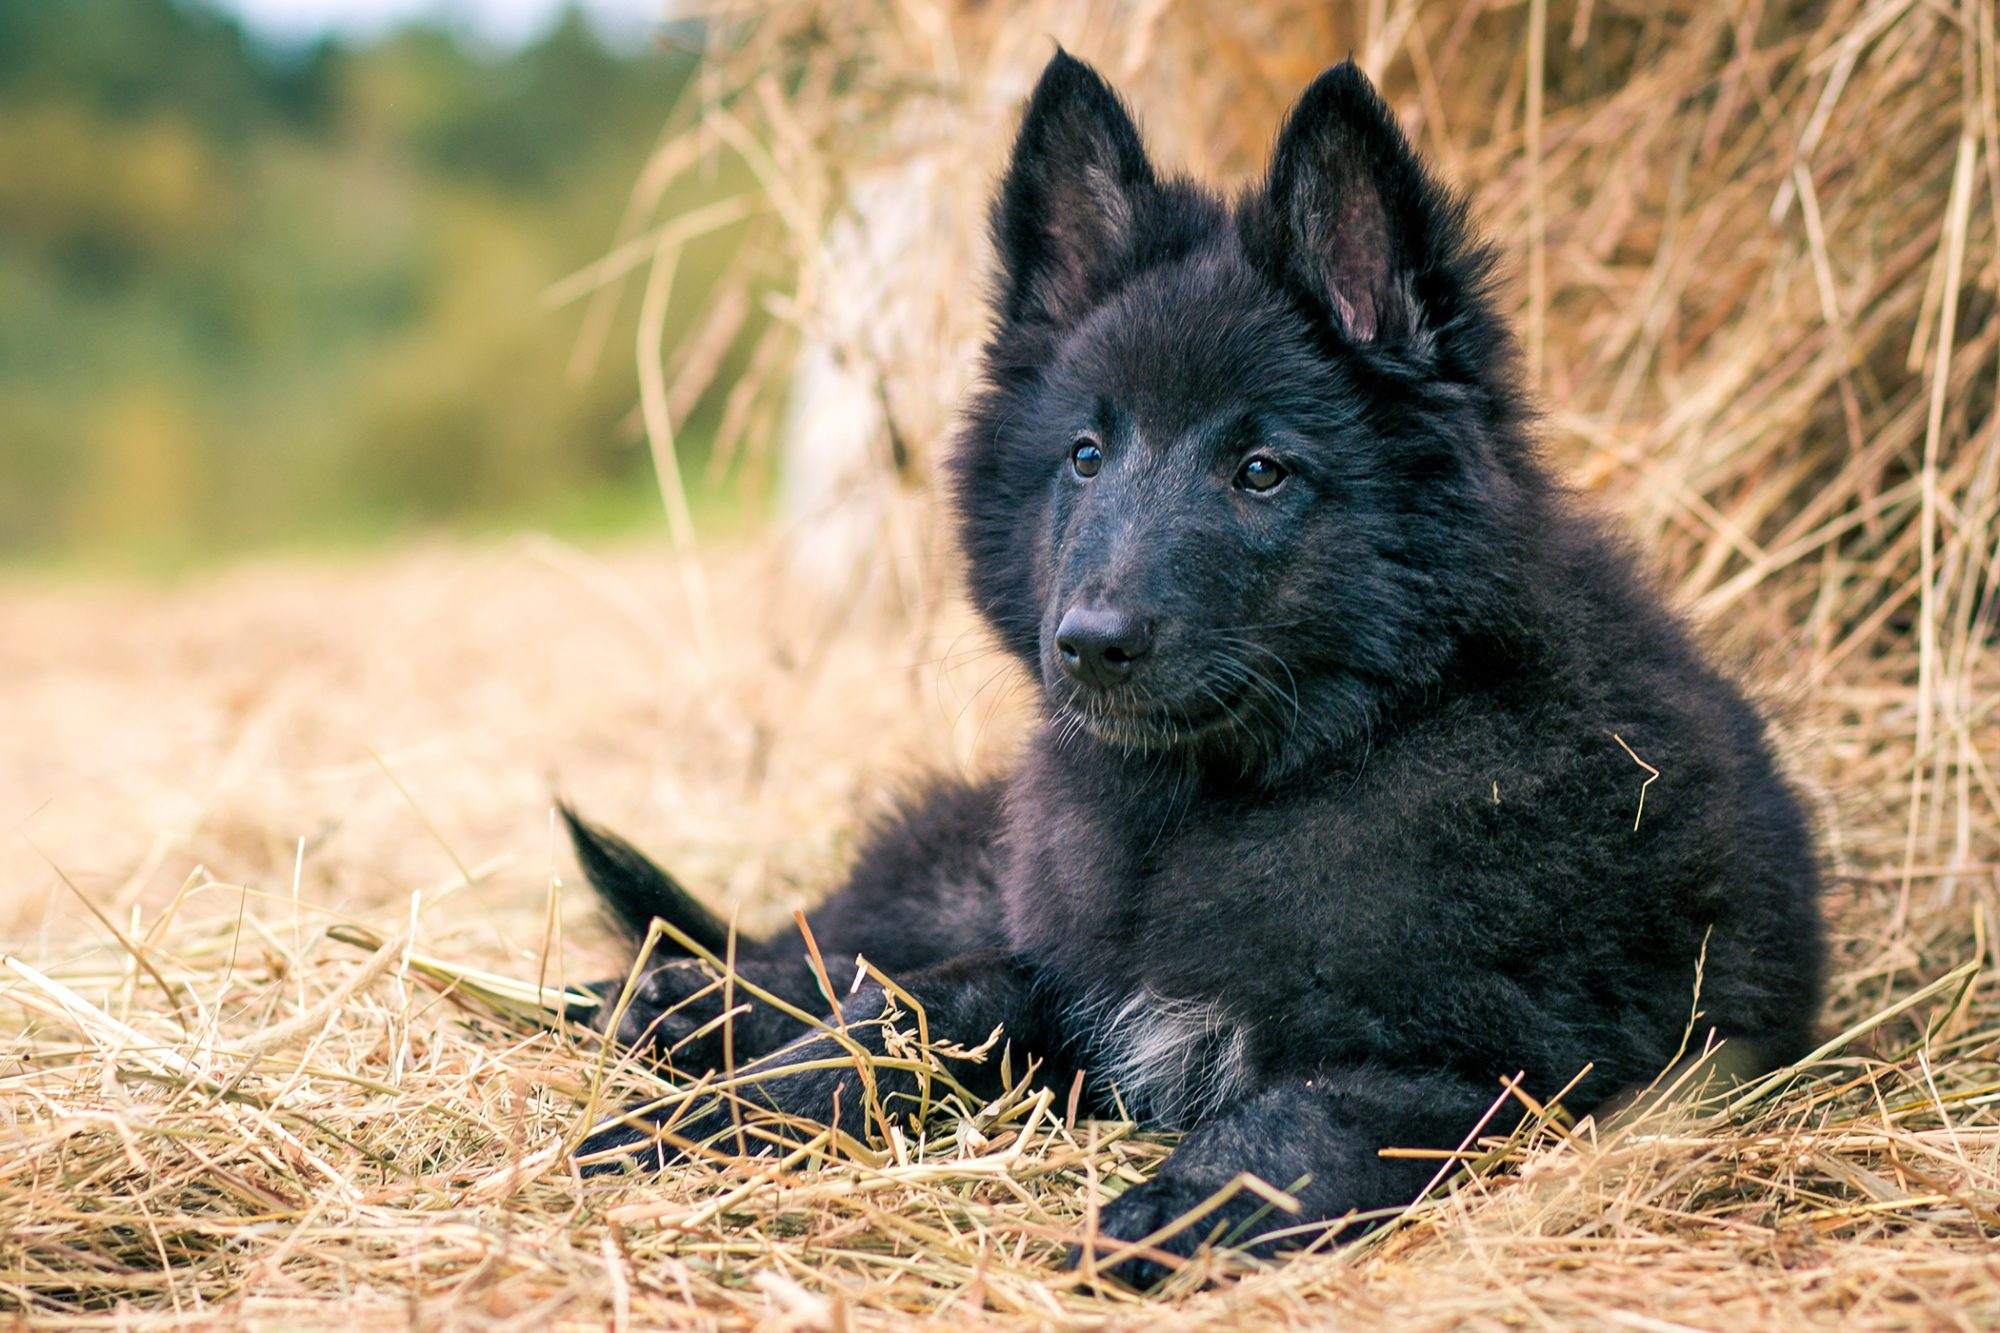 Belgian sheepdog puppy lays in pile of hay outdoors